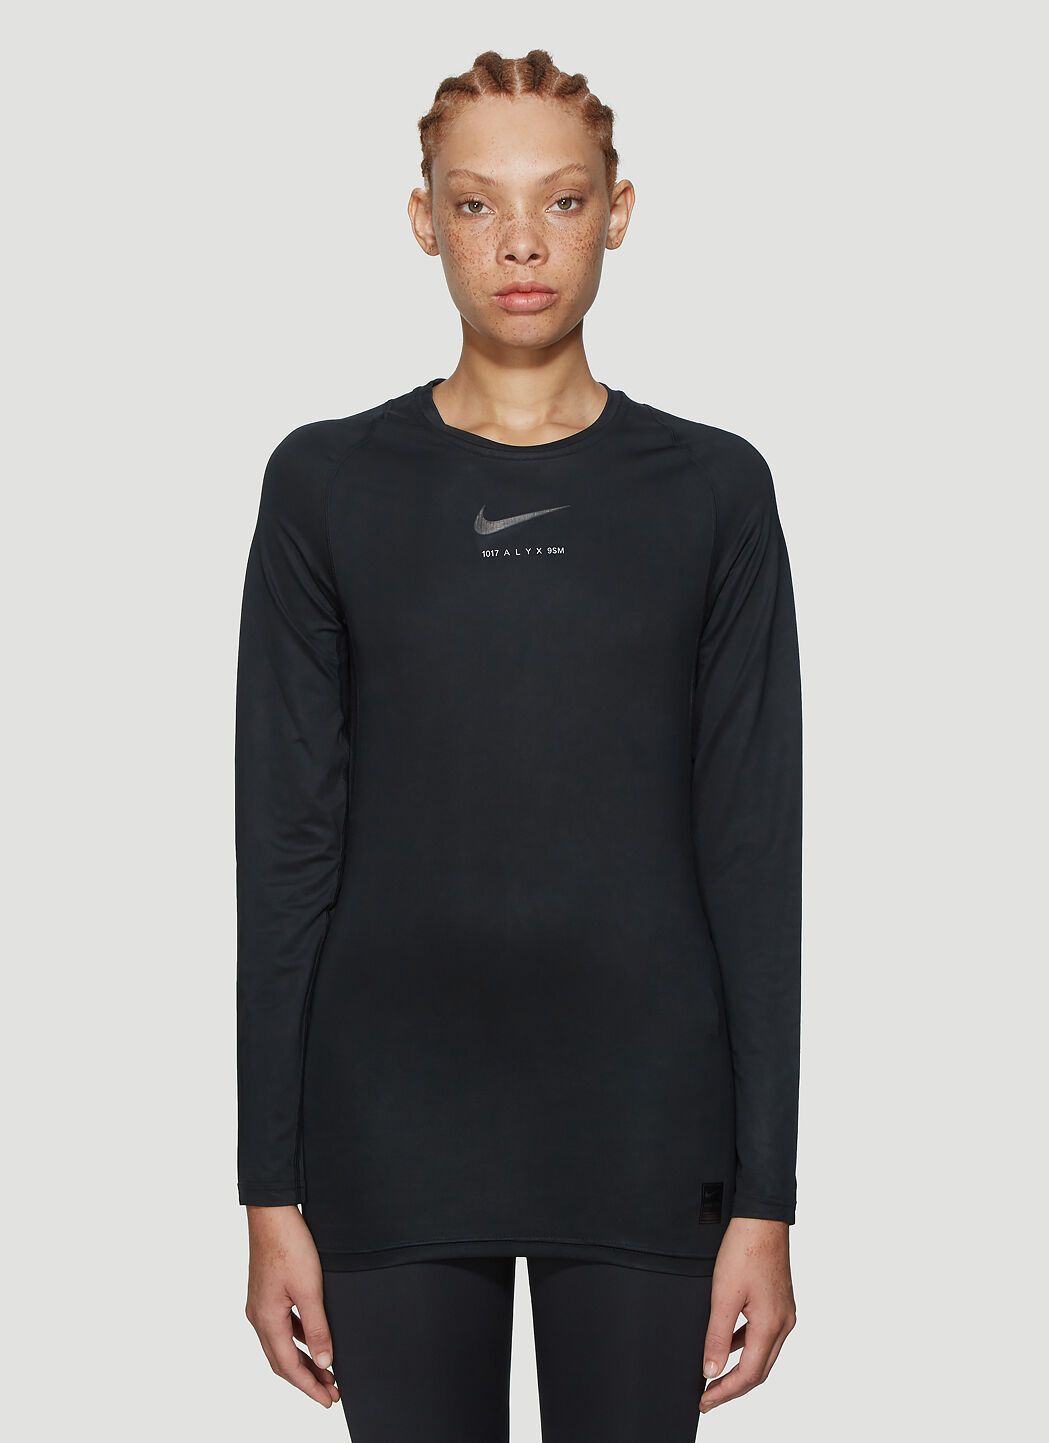 1017 Alyx 9SM x Nike fitted T shirt